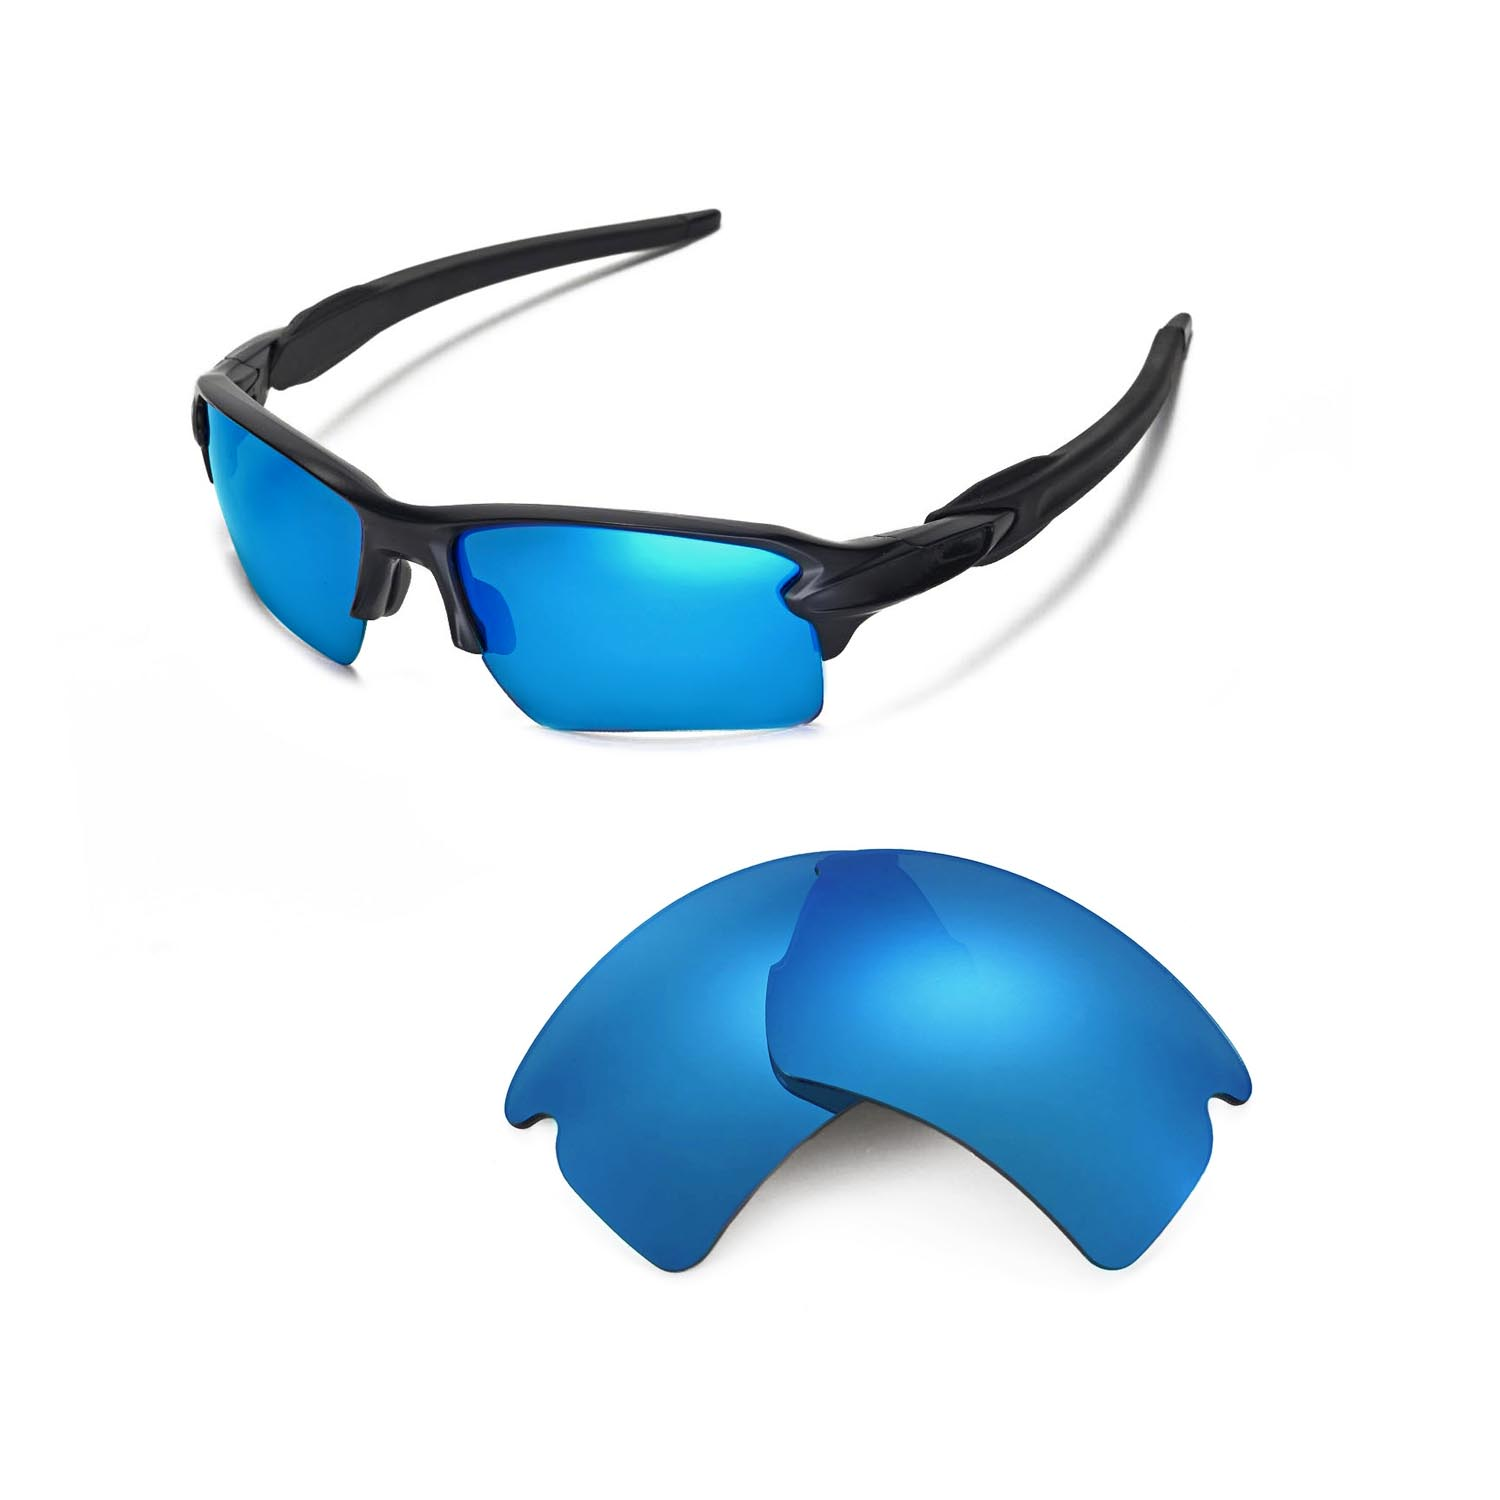 b9ea0e53a36ee Details about Walleva Polarized Ice Blue Replacement Lenses For Oakley Flak  2.0 XL Sunglasses